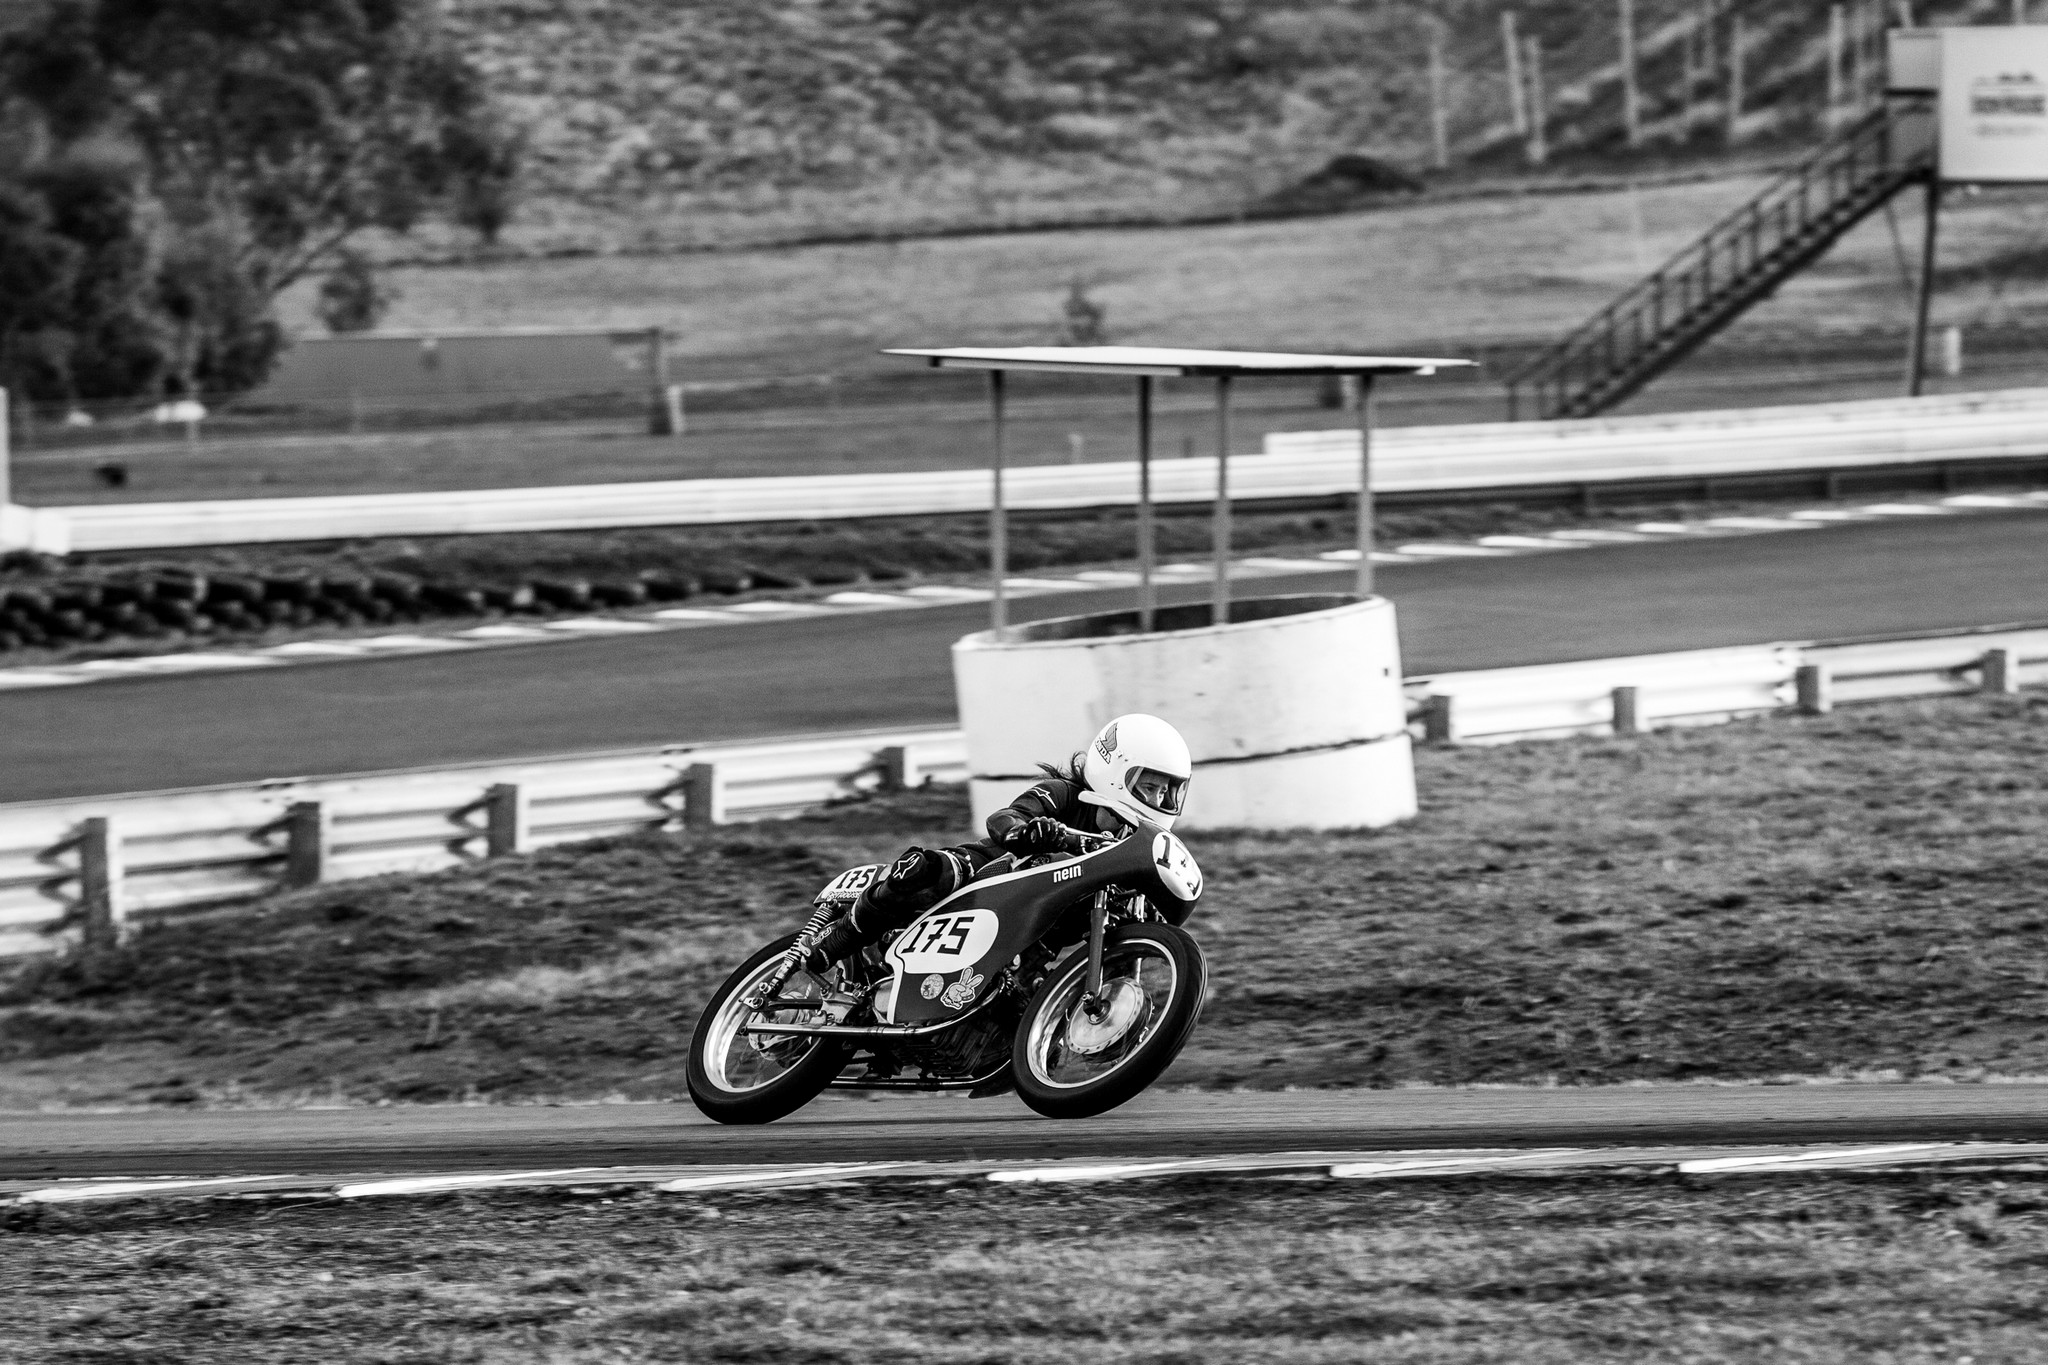 Black and white photo of a racing motorcycle at Tasmania's Baskerville Racetrack